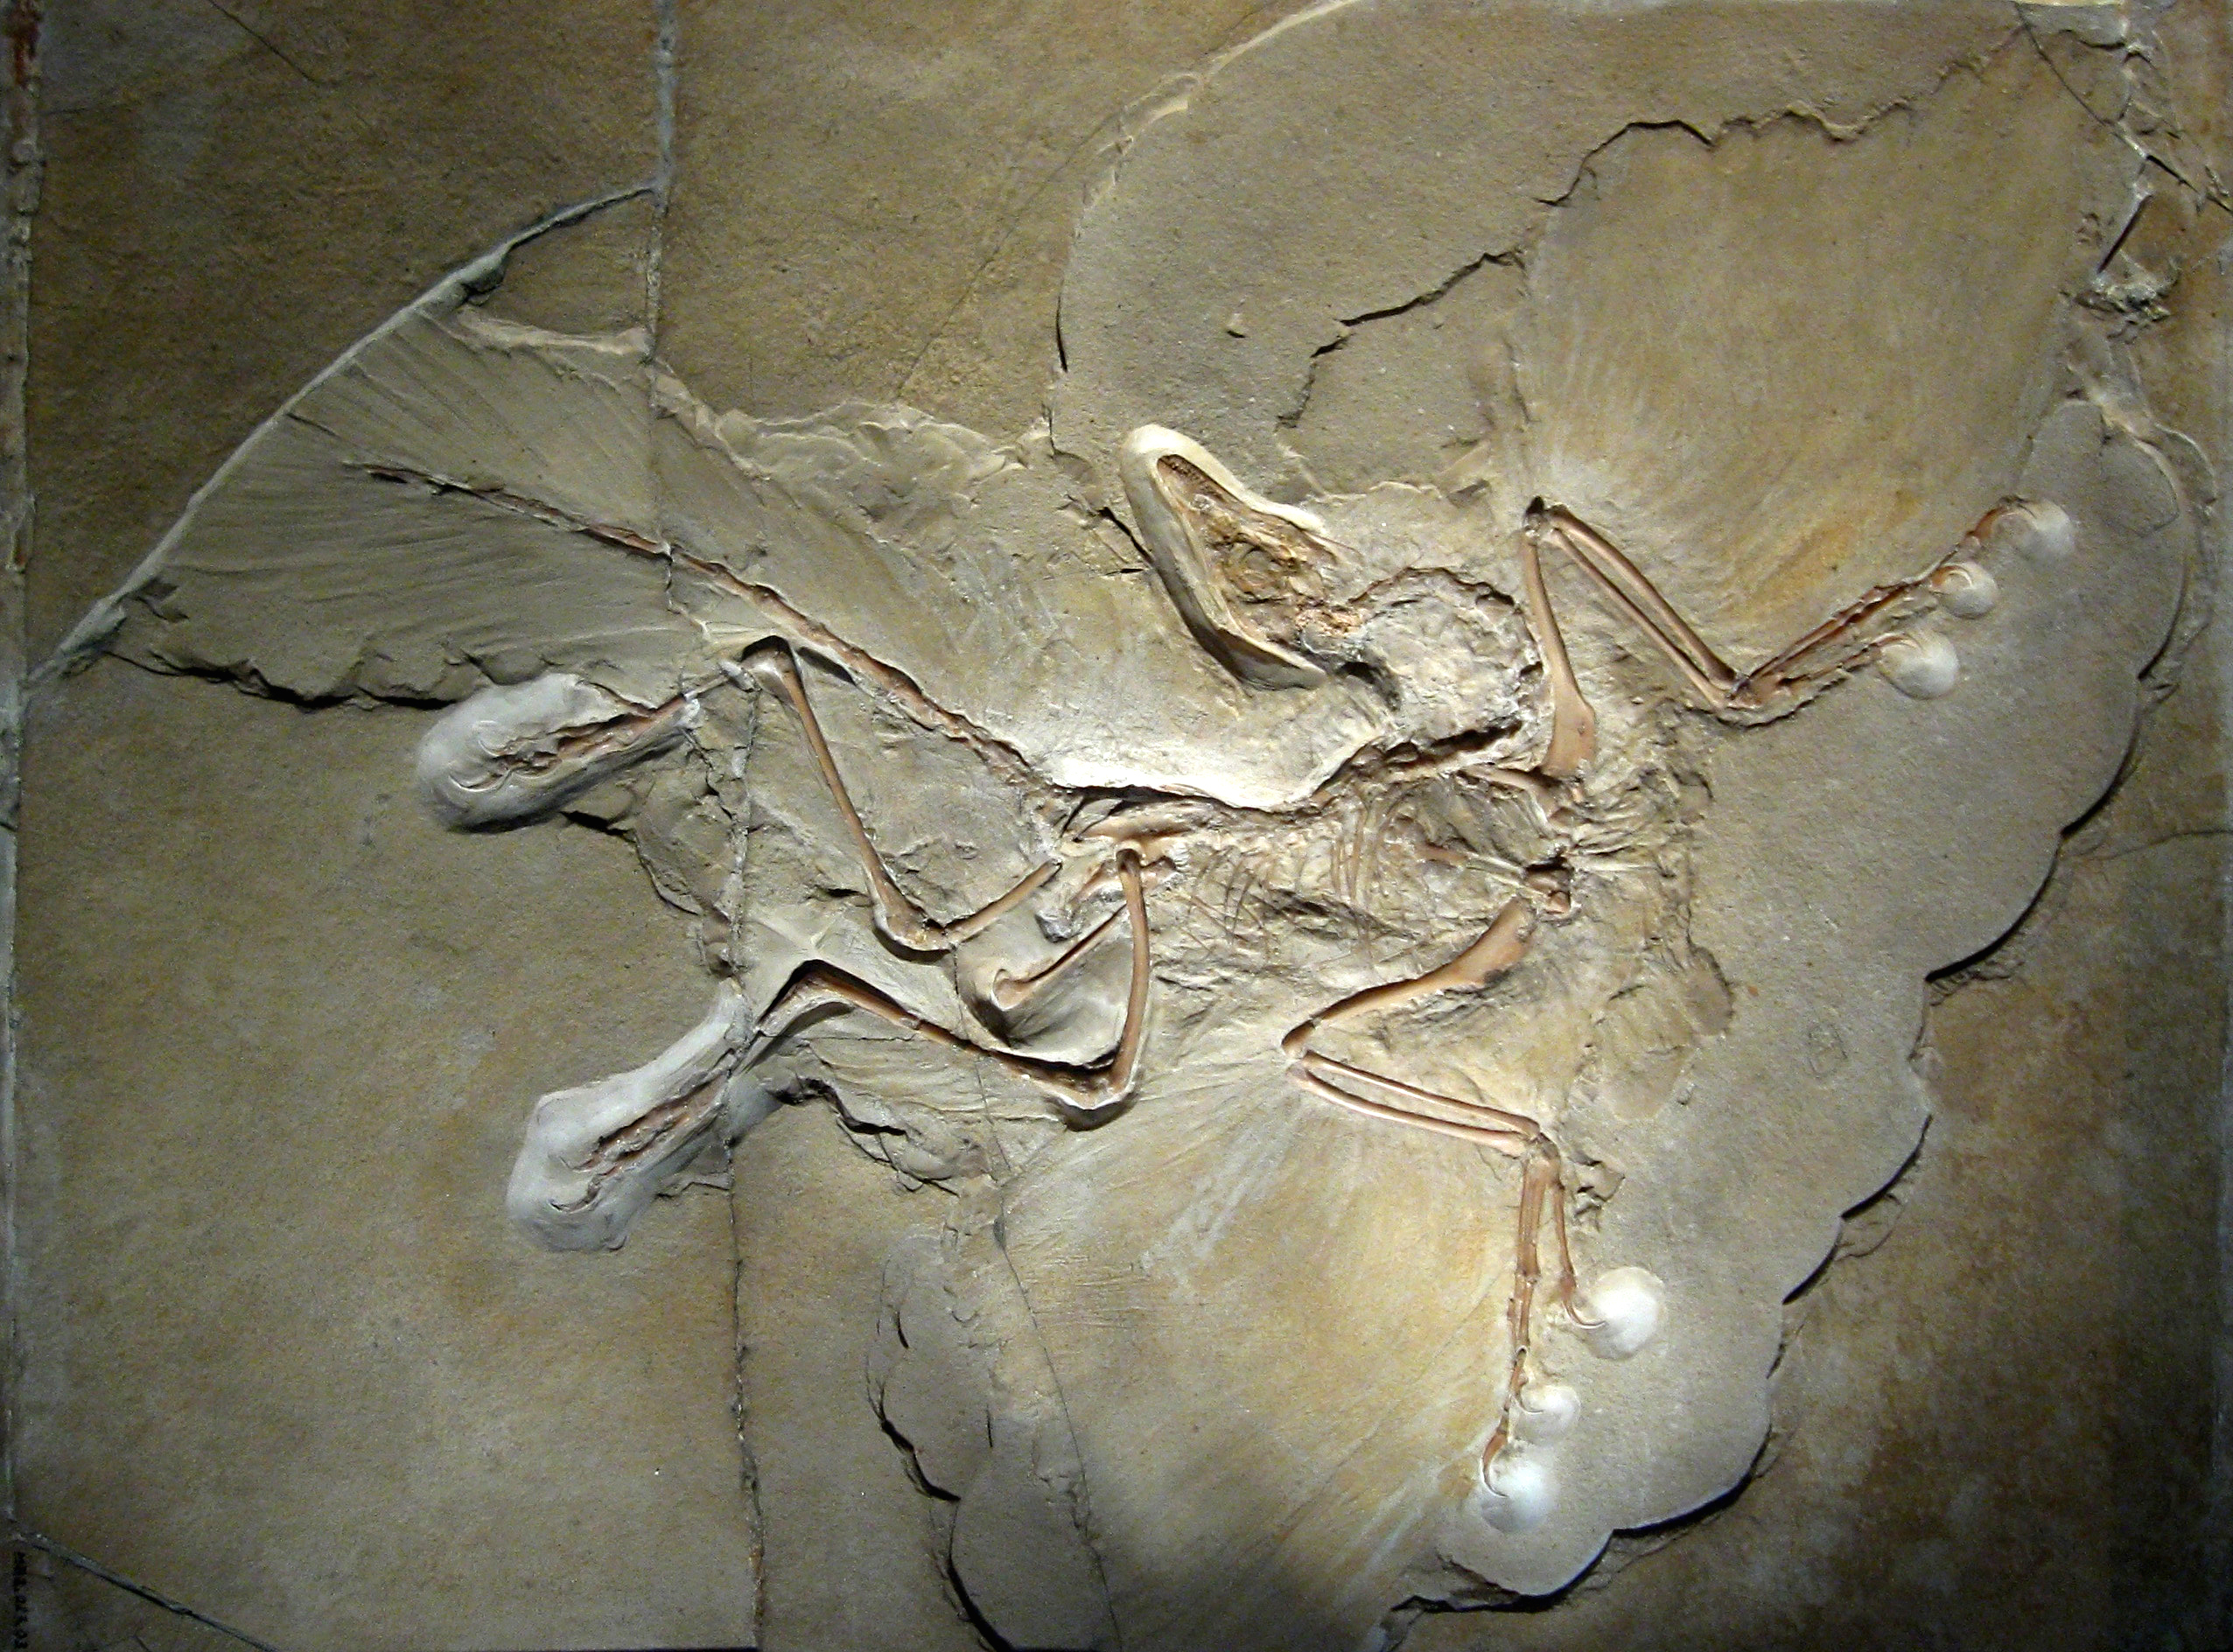 Archaeopteryx, a bird-like dinosaur. Note the long visible feather impressions.